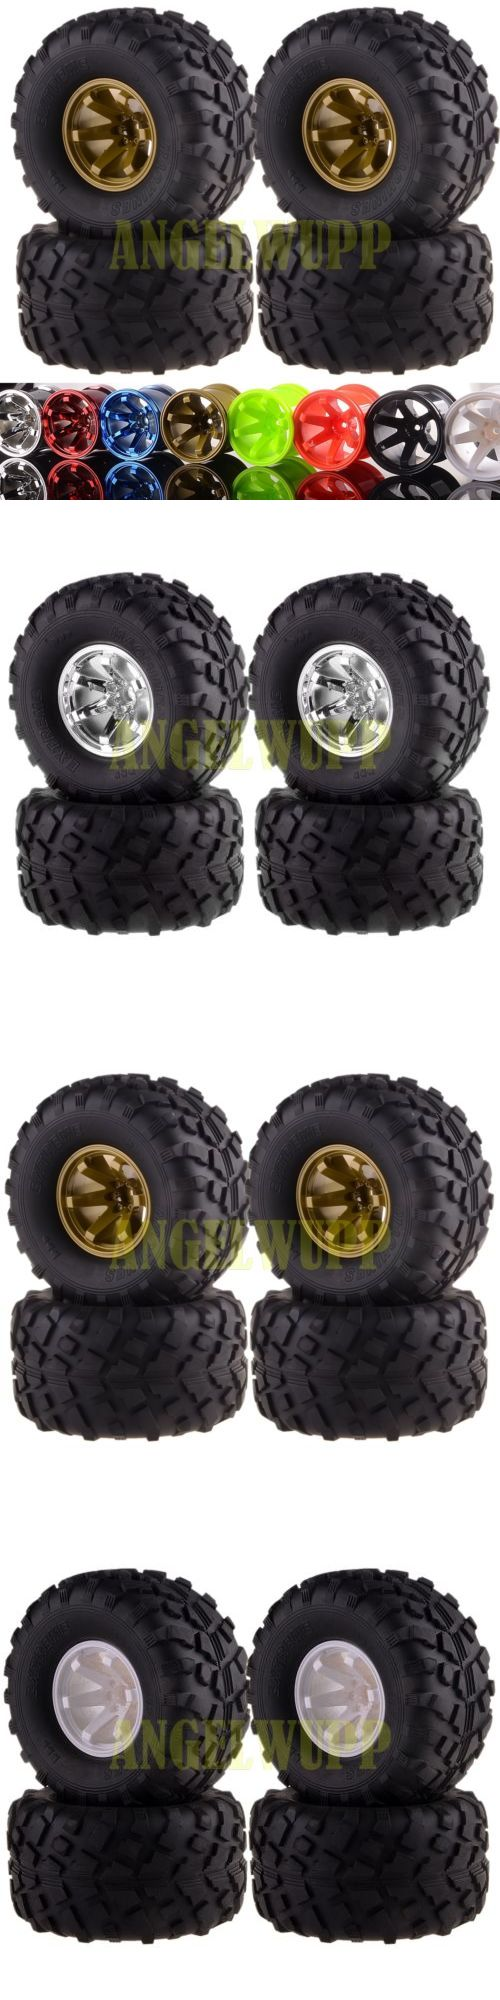 Radio Control 51029: Rc 1 10 Off Road Monster Truck Wheel Rimandtyre Tires 6008-3003 Hsp Hpi 8Colors -> BUY IT NOW ONLY: $35.91 on eBay!